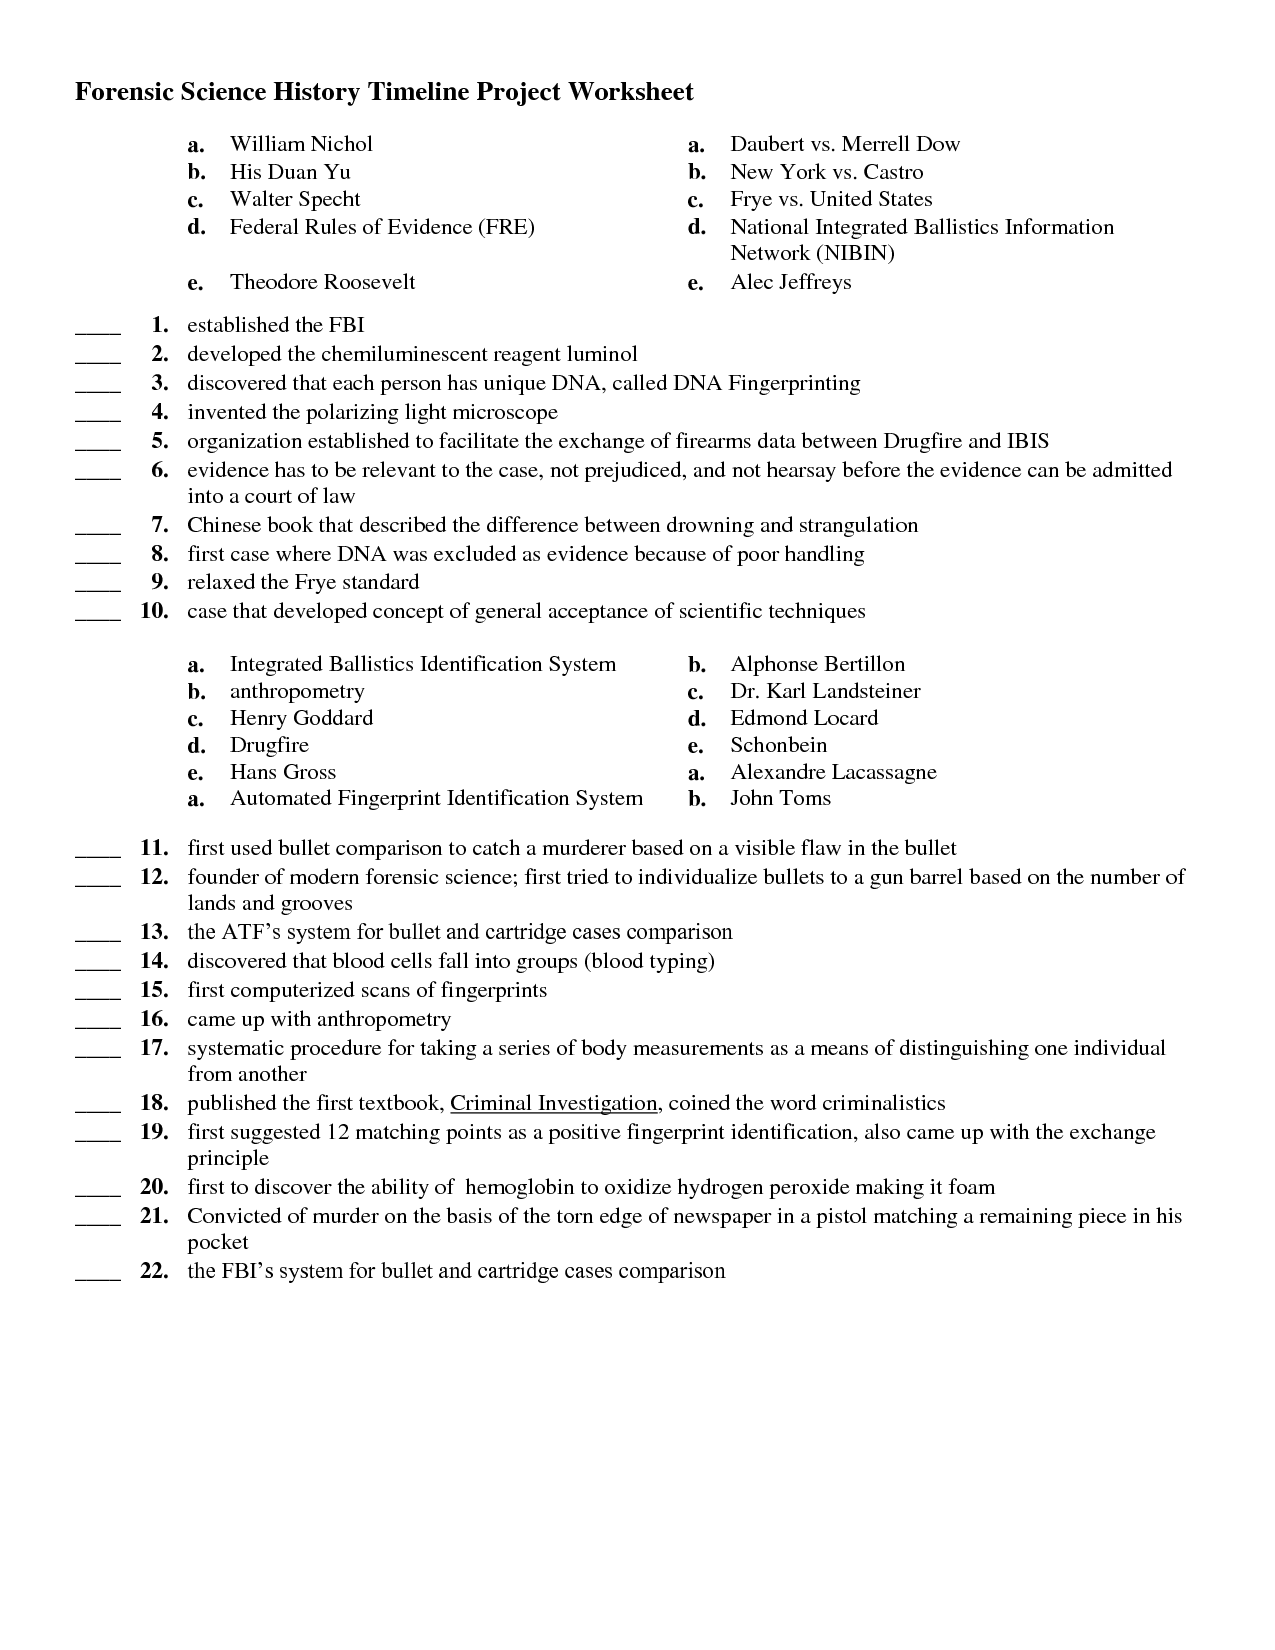 Gattaca Worksheet With Answers